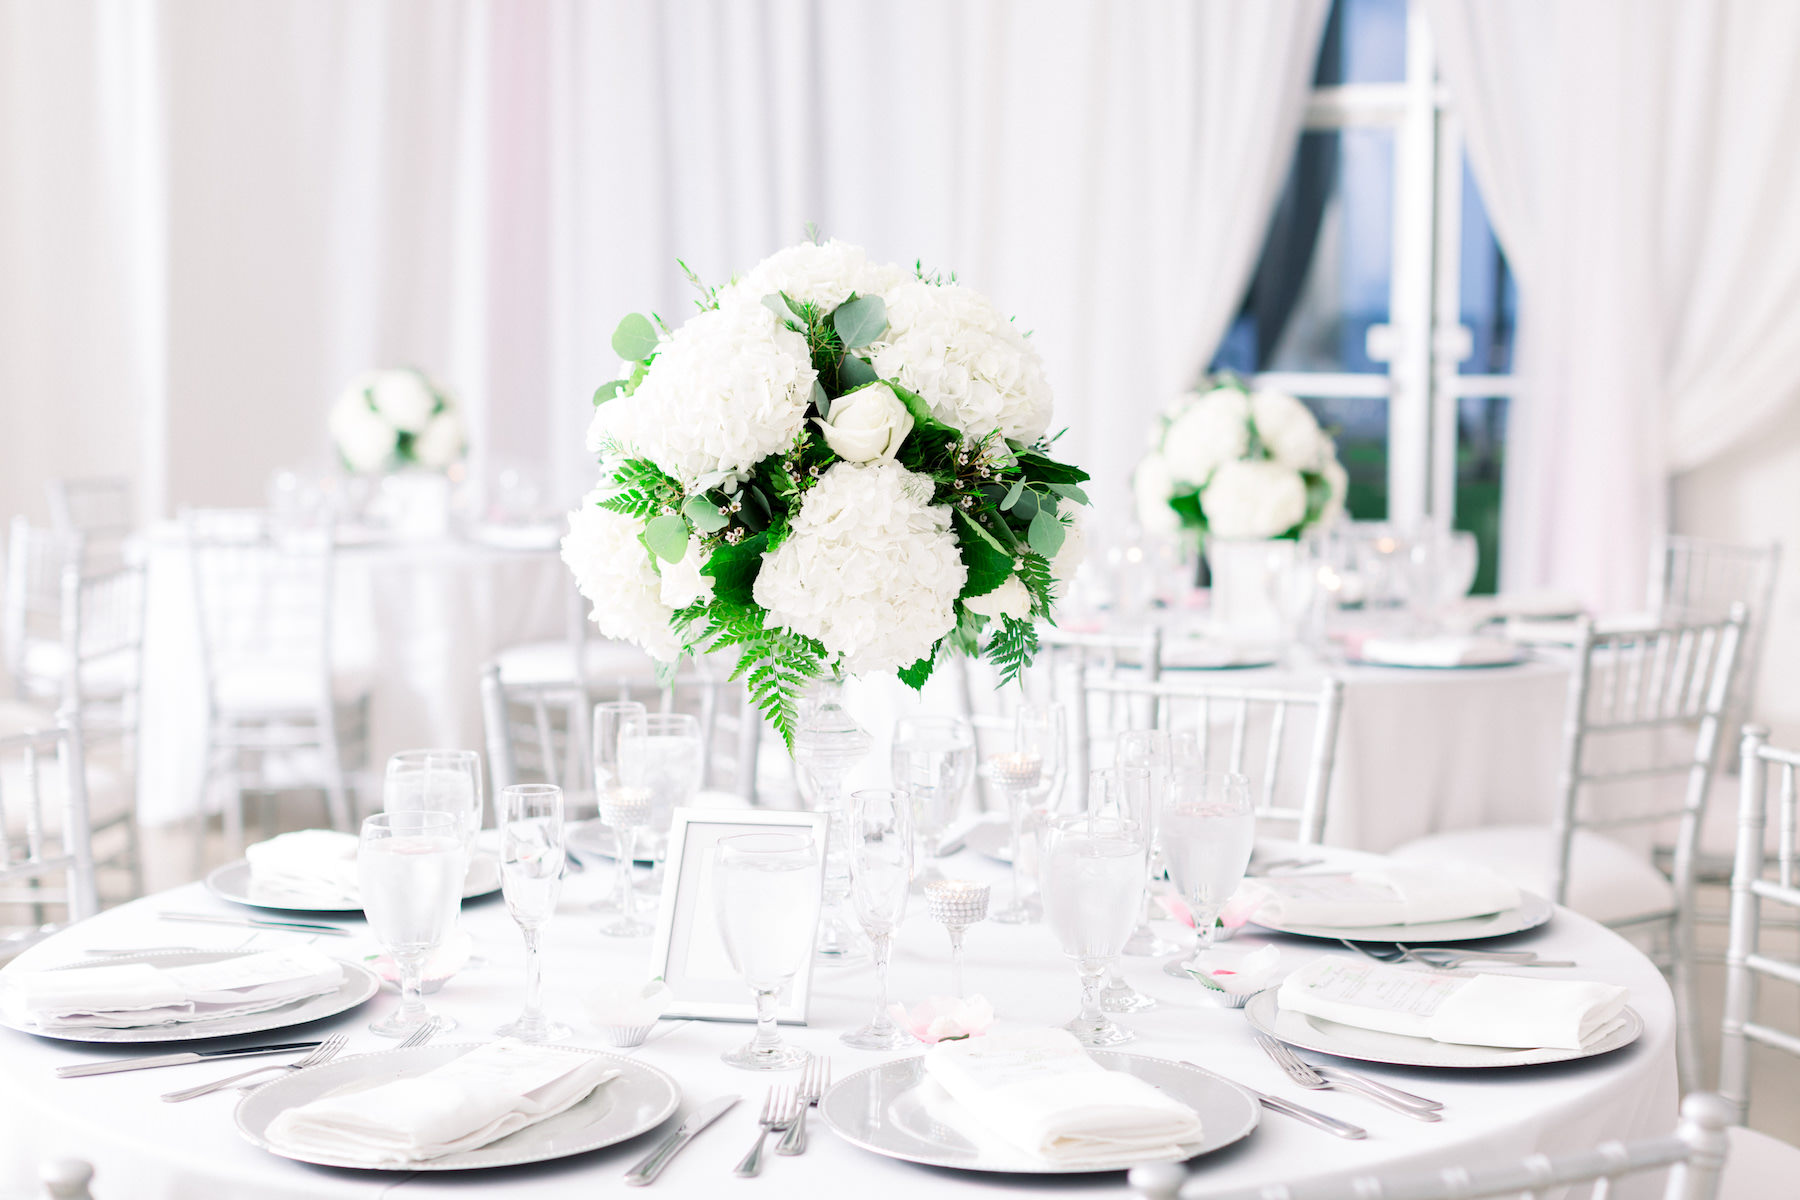 Classic Garden Glam Wedding Reception Decor, Silver Chargers, White Hydrangeas and Roses with Greenery Floral Centerpiece, Silver Chiavari Chairs | Wedding Venue Tampa Garden Club | Wedding Photographer Shauna and Jordon Photography